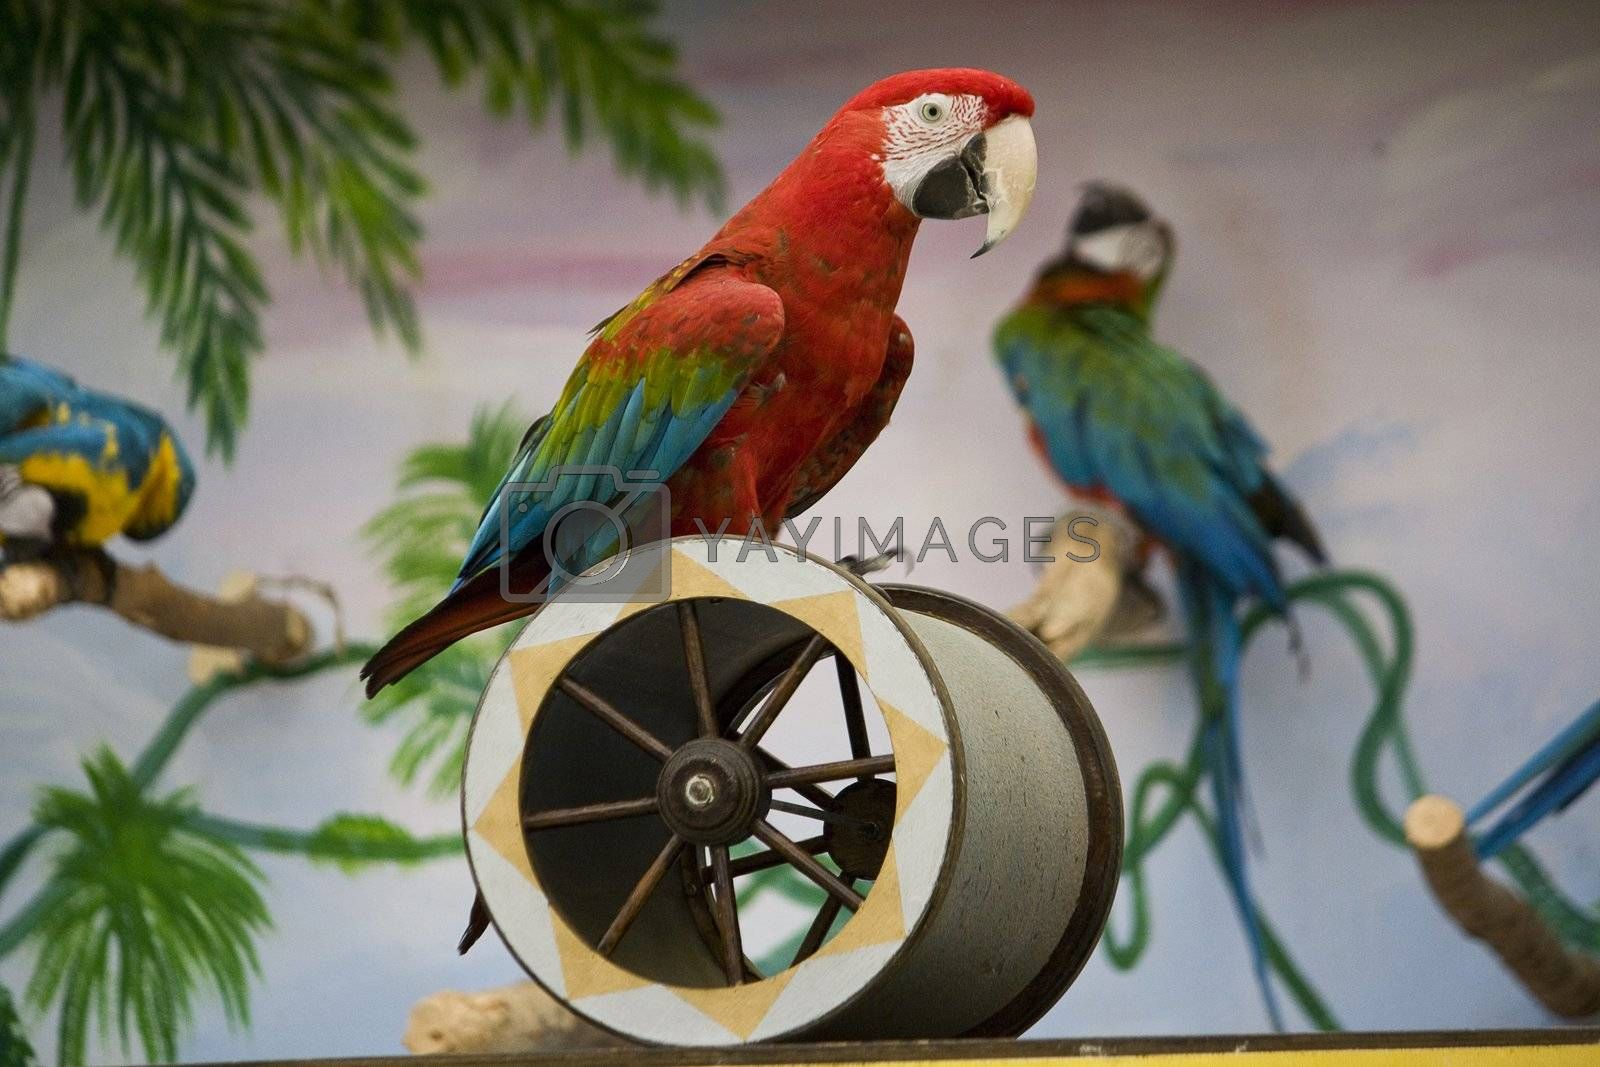 View of a scarlet macaw performing a show on a cylinder.